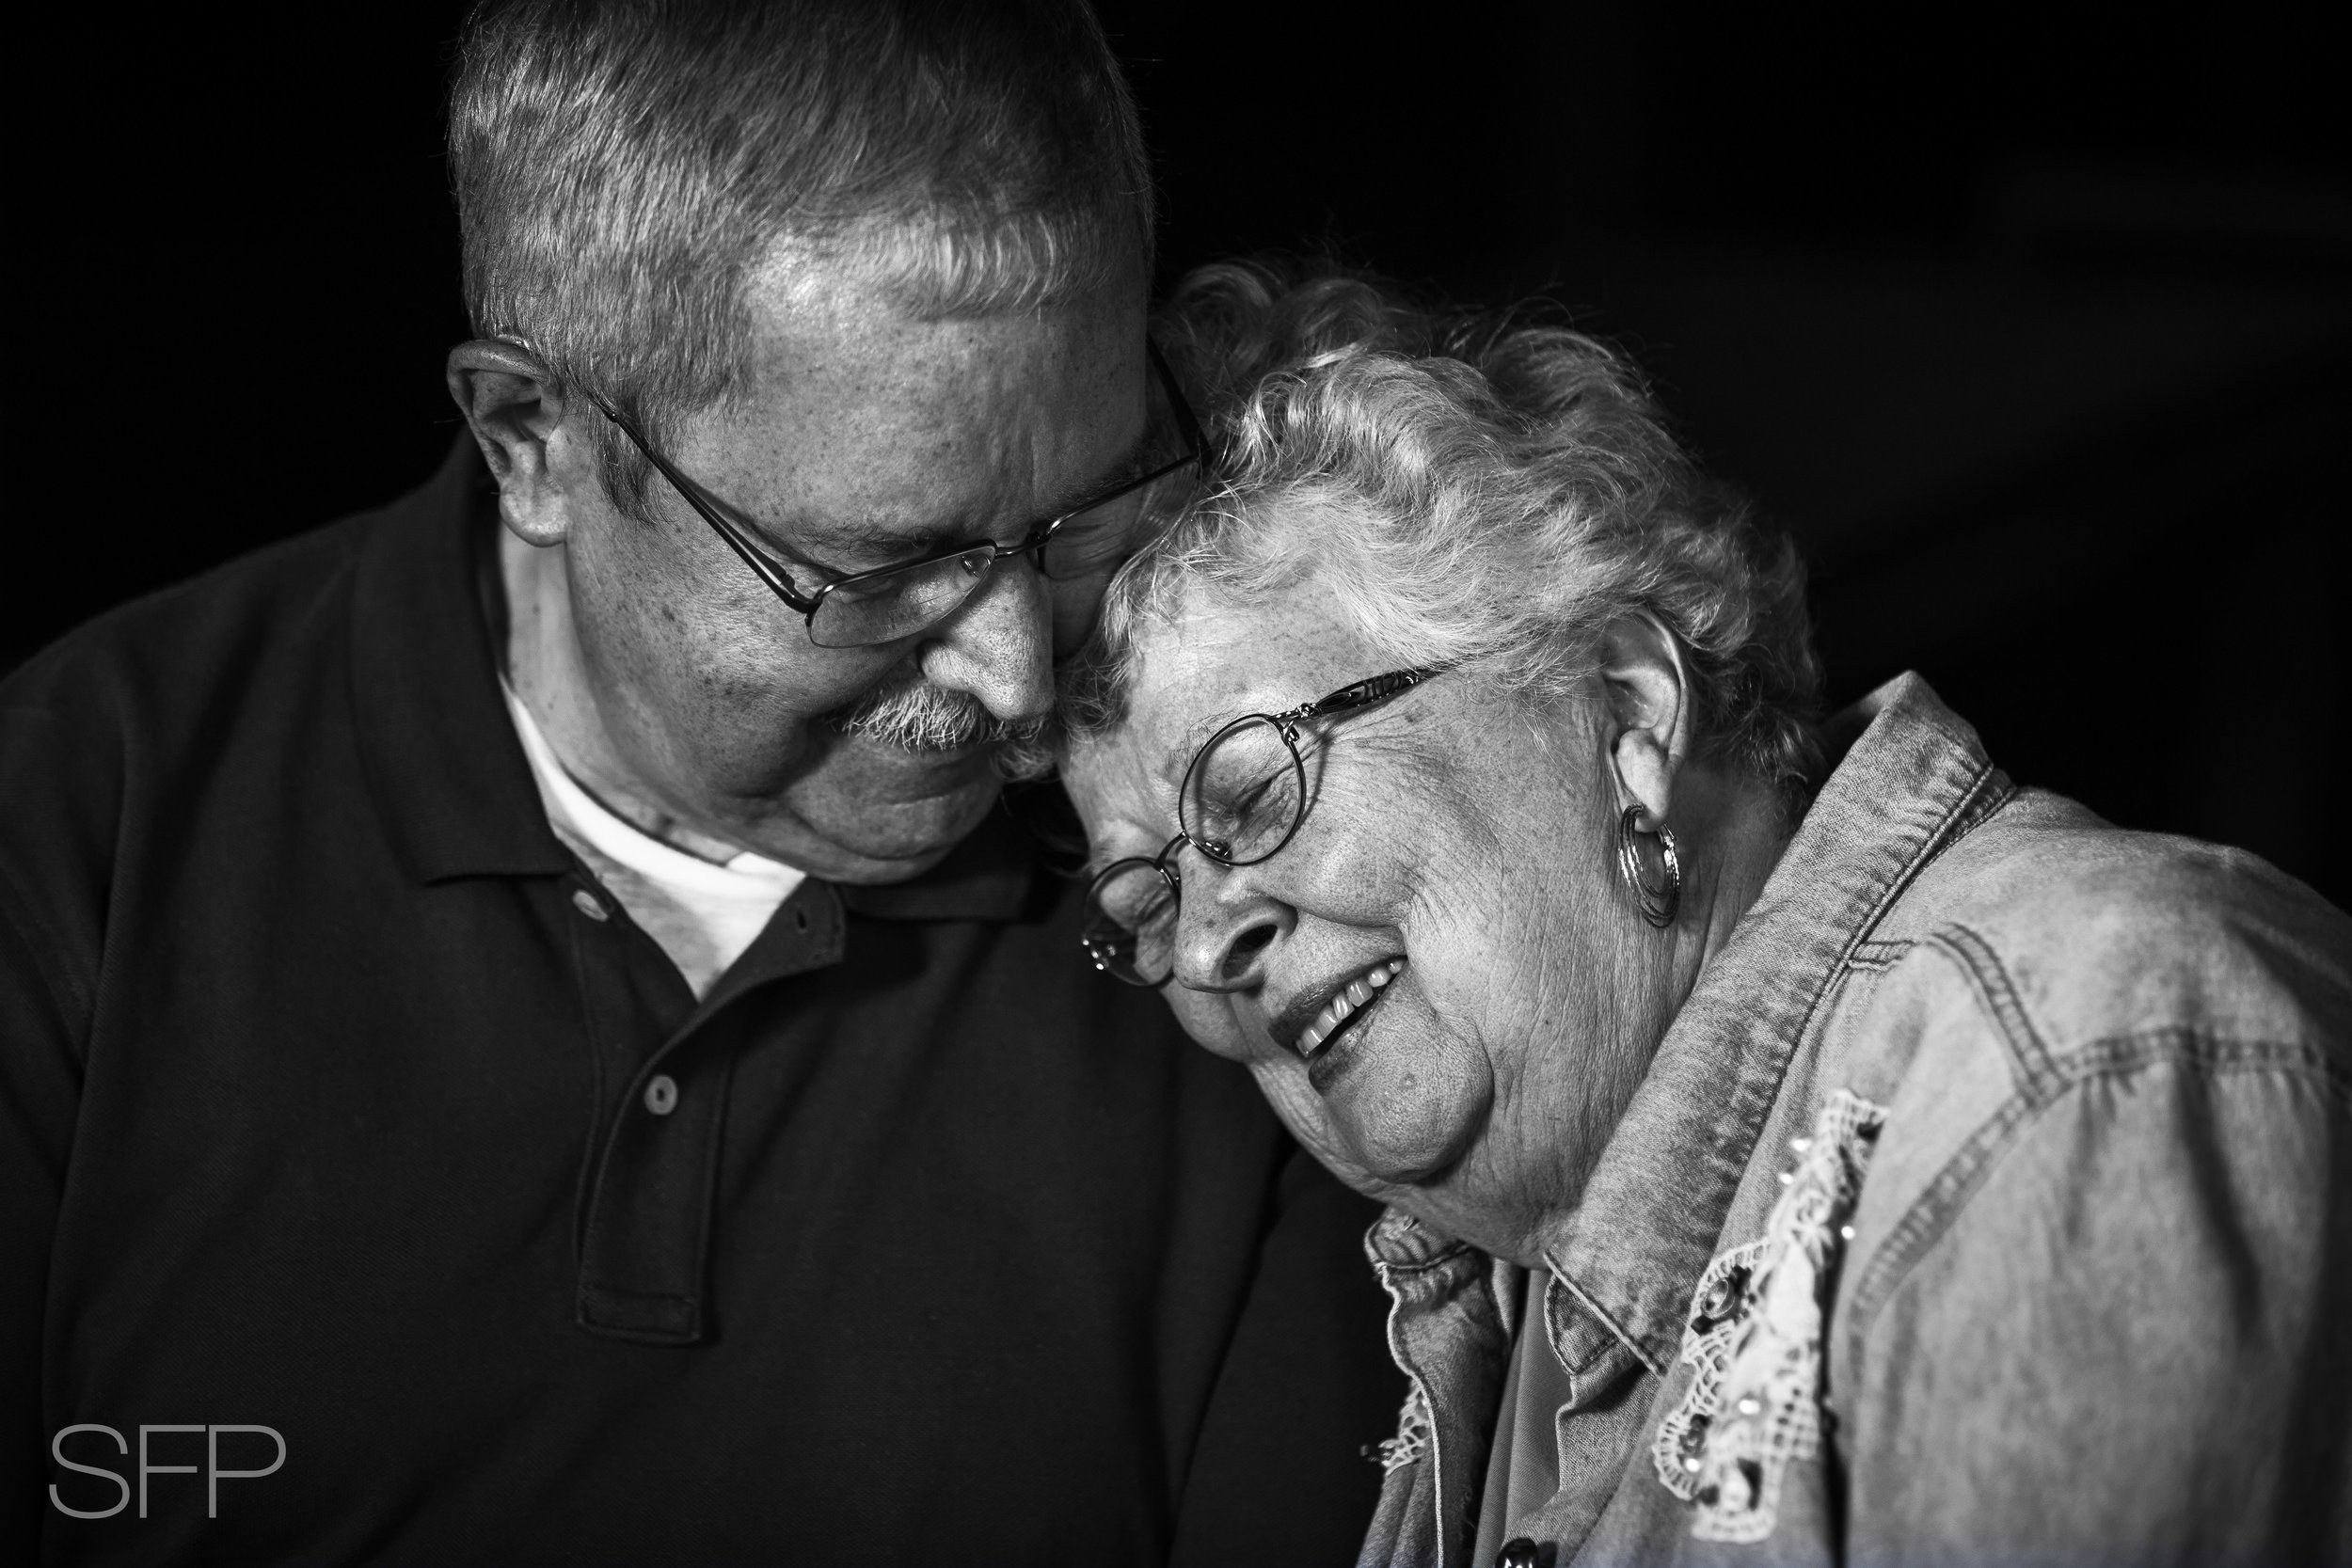 50 years of marriage and support